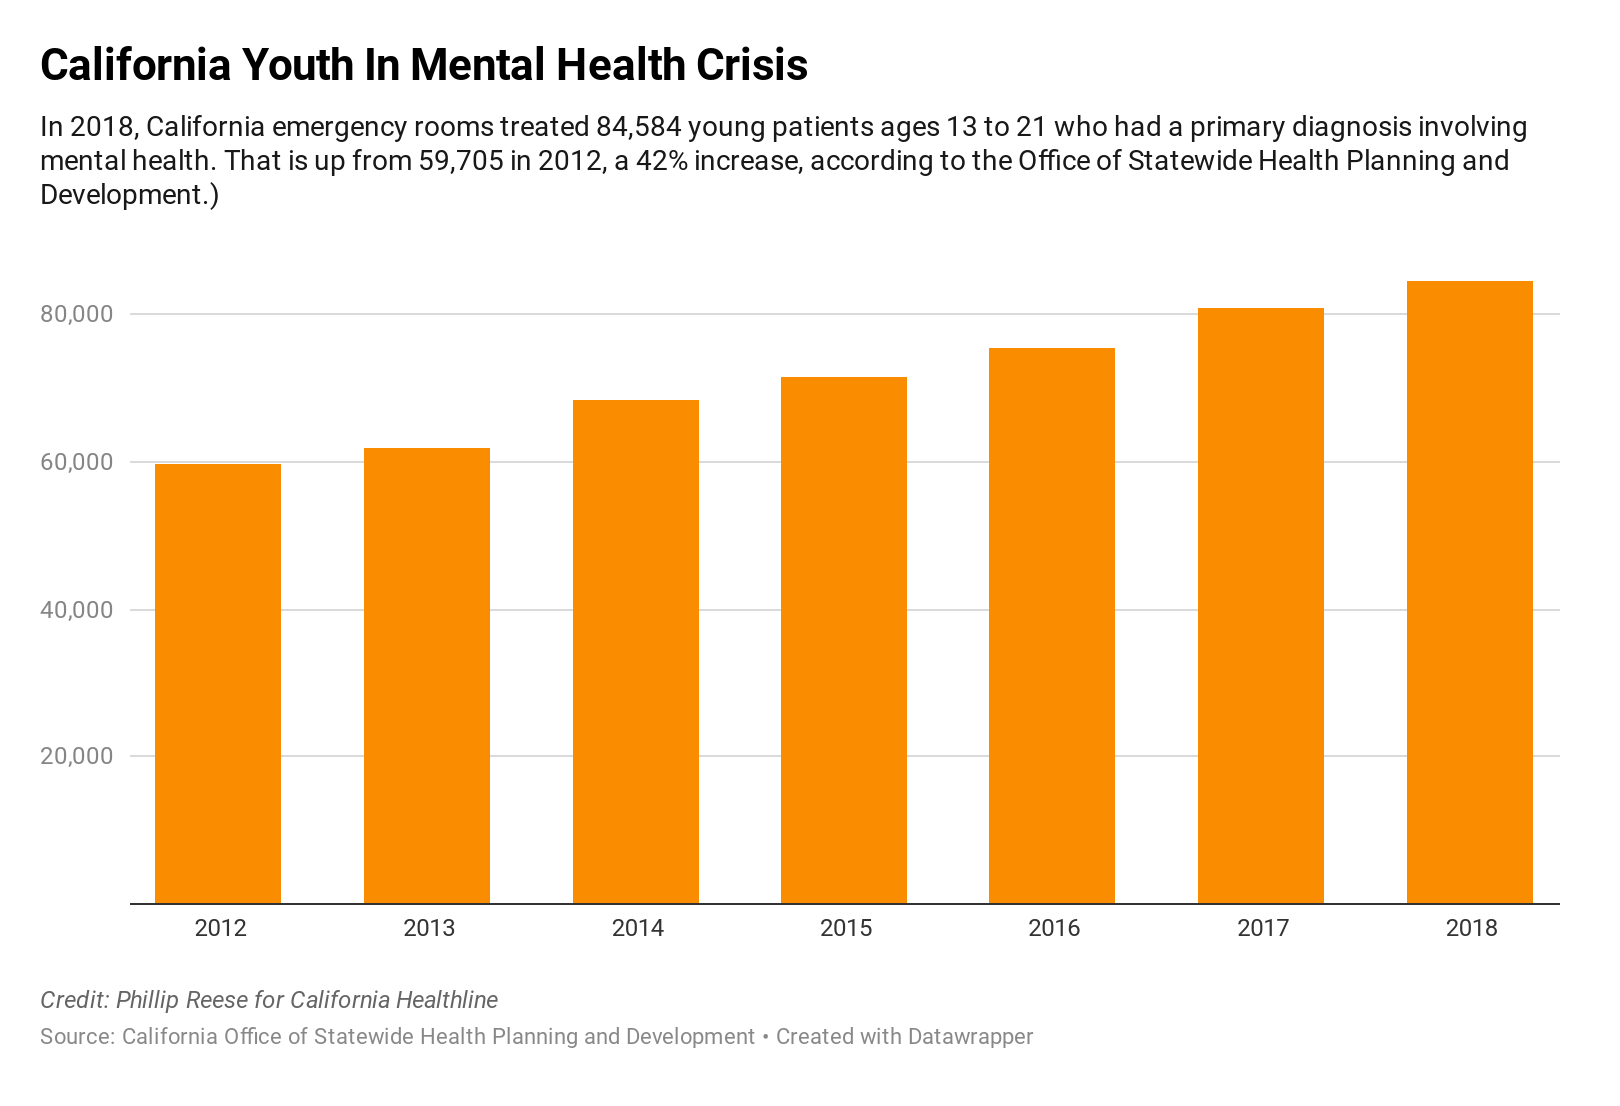 California Youth In Mental Health Crisis